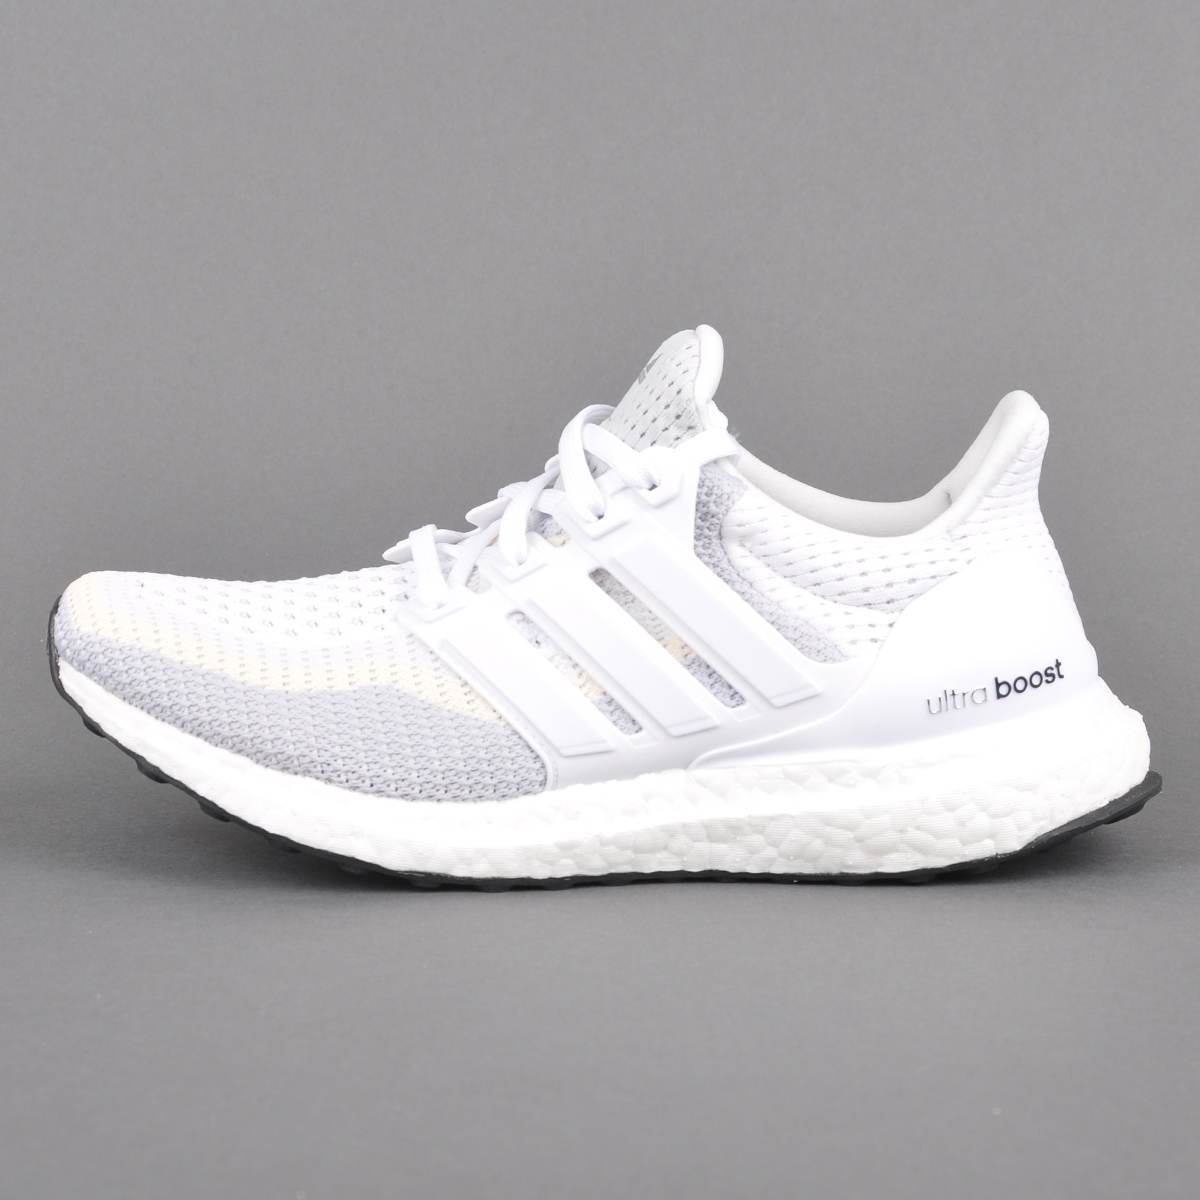 uk availability 4f598 20e9a ... adidas ultra boost womens white